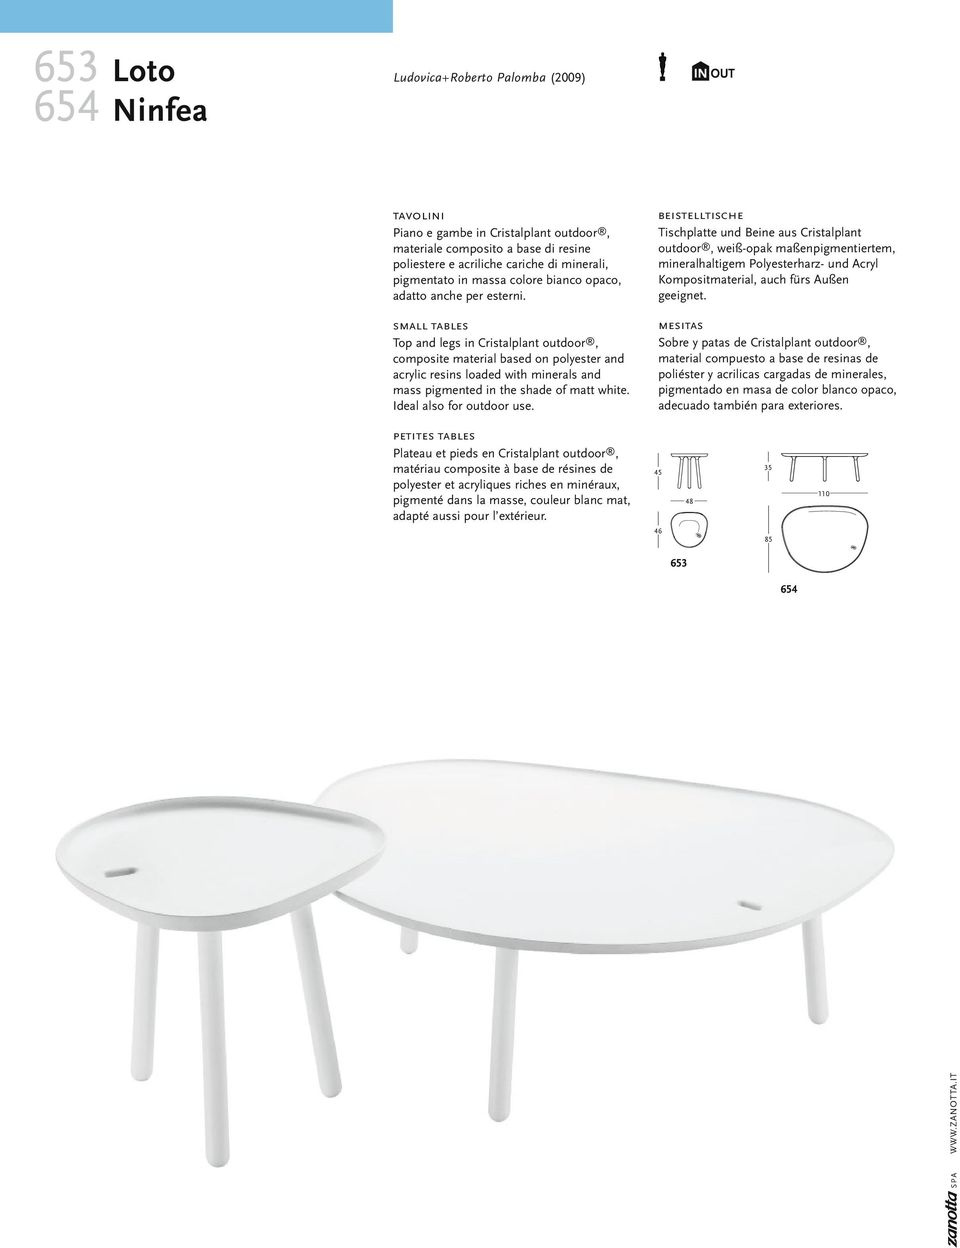 small tables Top and legs in Cristalplant outdoor, composite material based on polyester and acrylic resins loaded with minerals and mass pigmented in the shade of matt white.